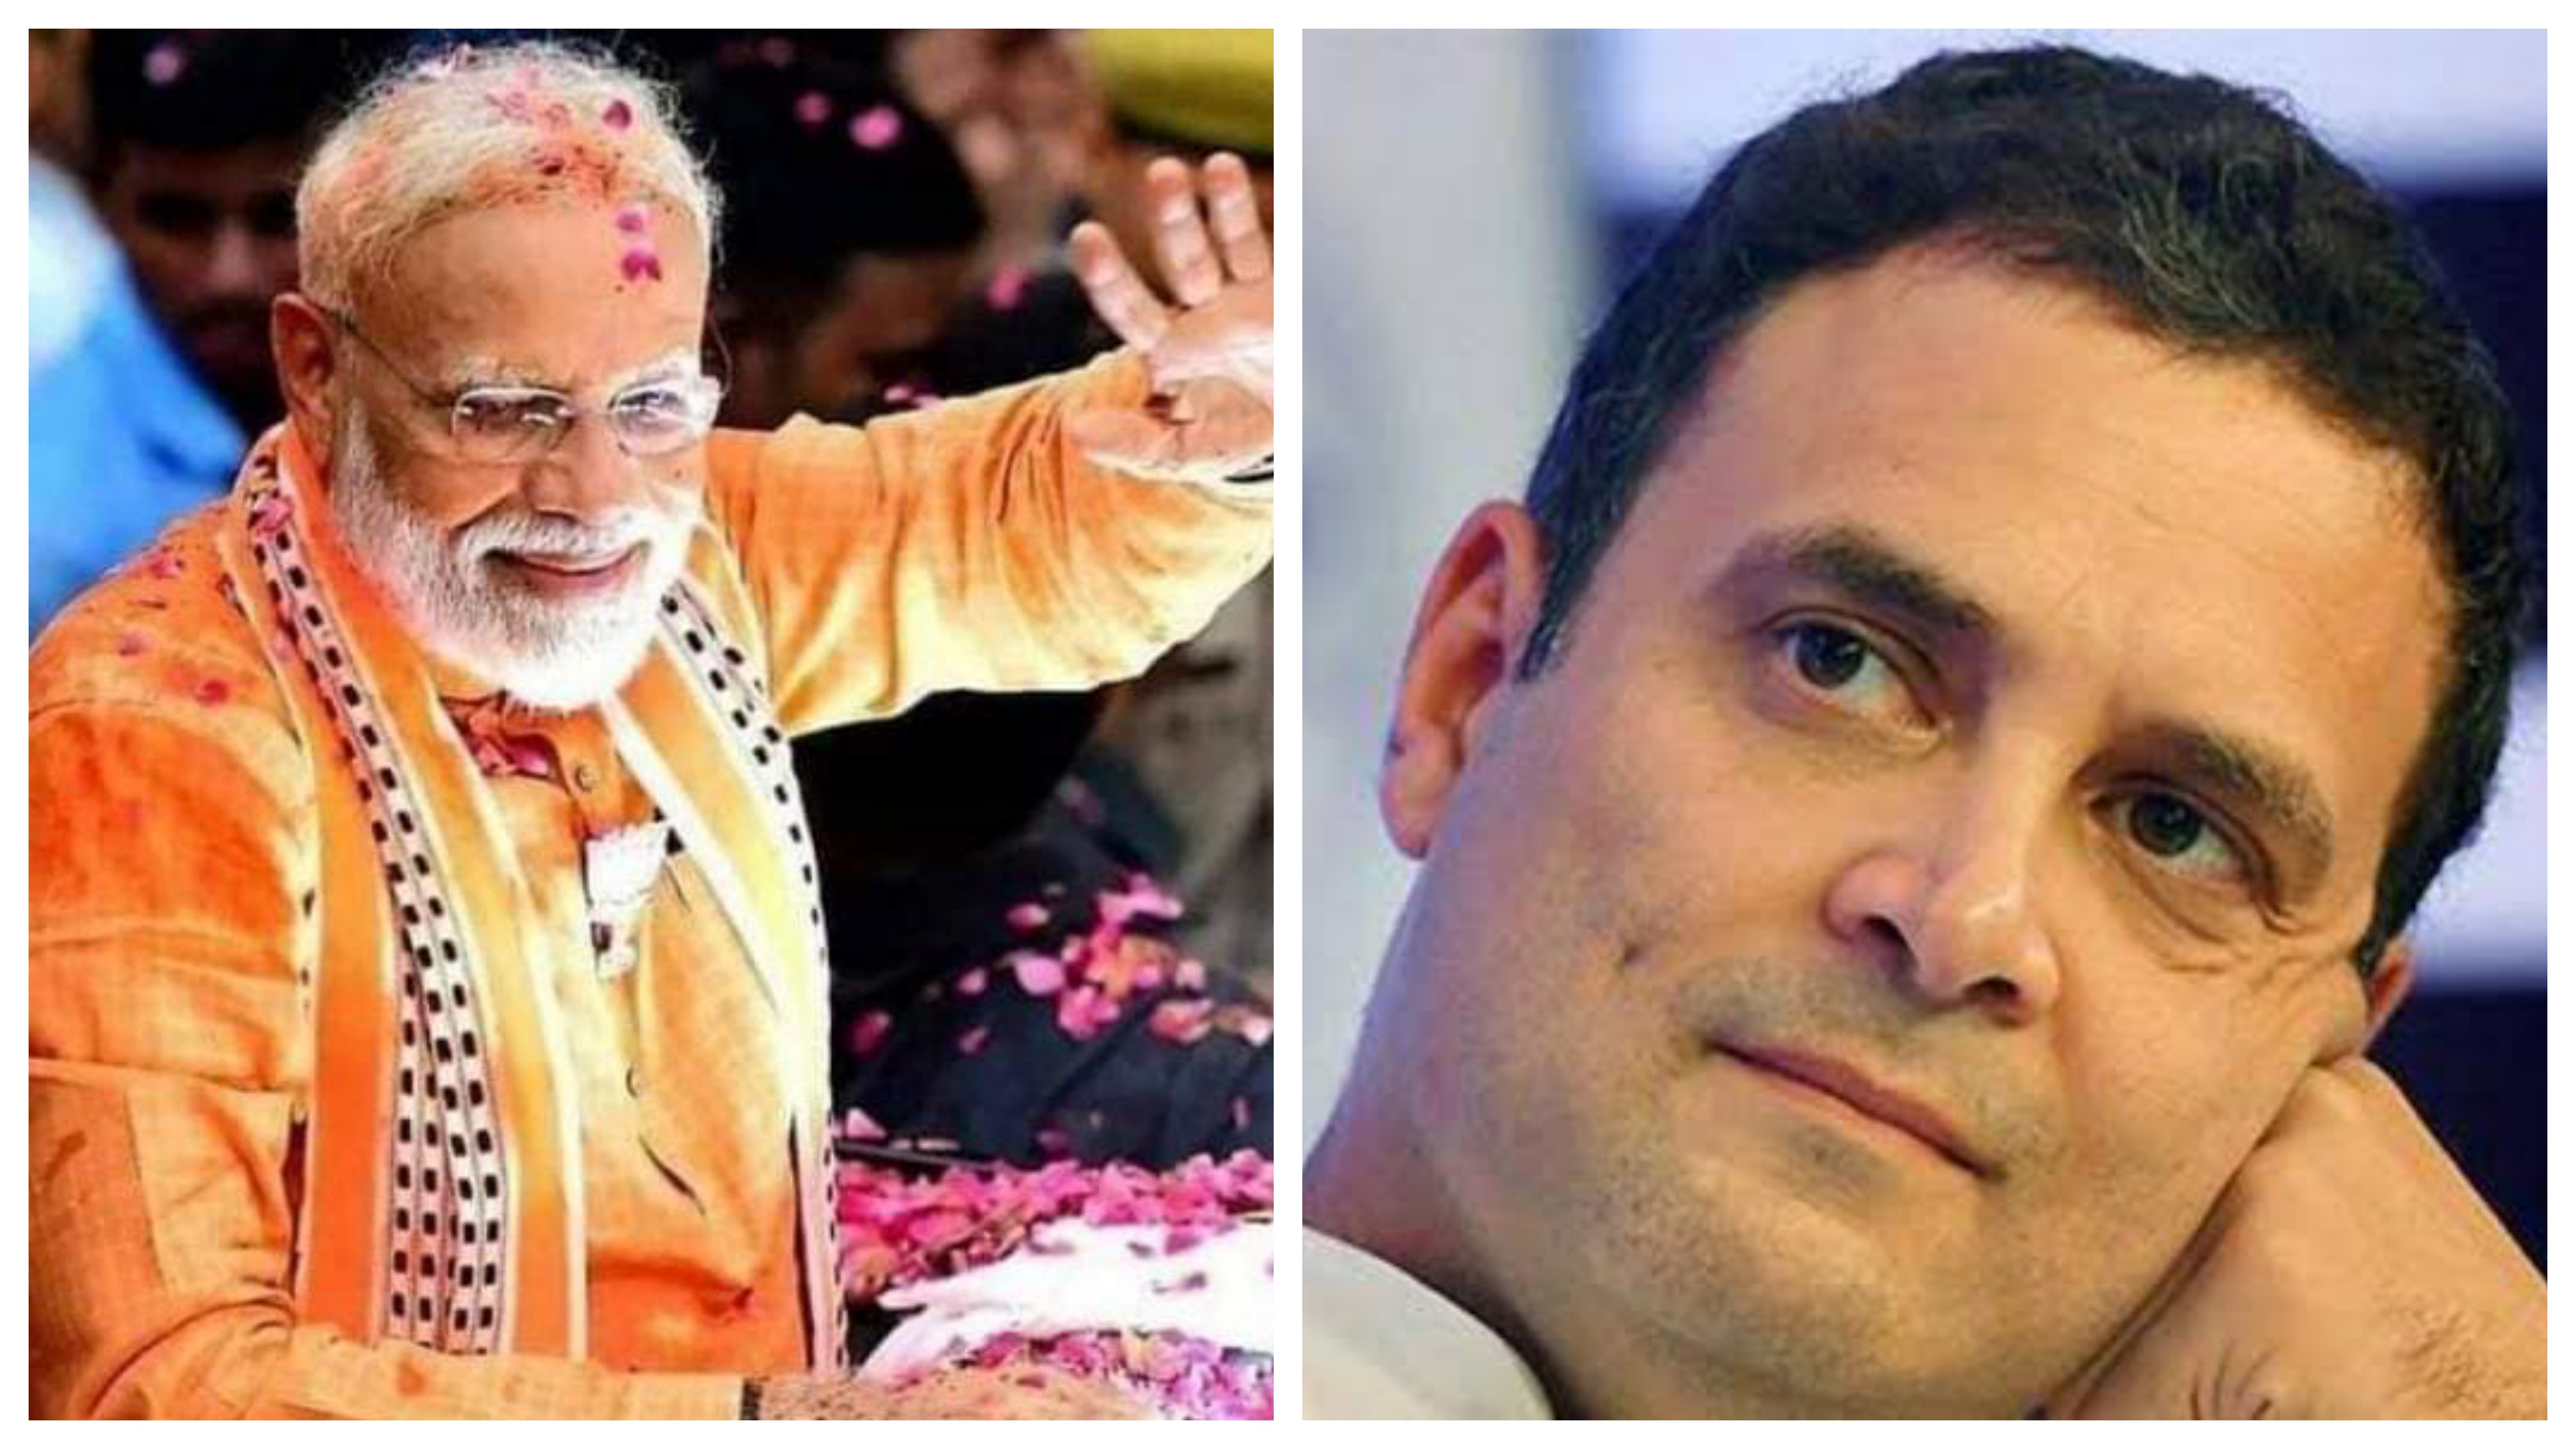 Contrasting fortunes: Indian PM Narendra Modi (left) looks set for another term in charge while Congress president Rahul Gandhi is trailing in his traditional safe seat of Amethi. Photo courtesy: Twitter